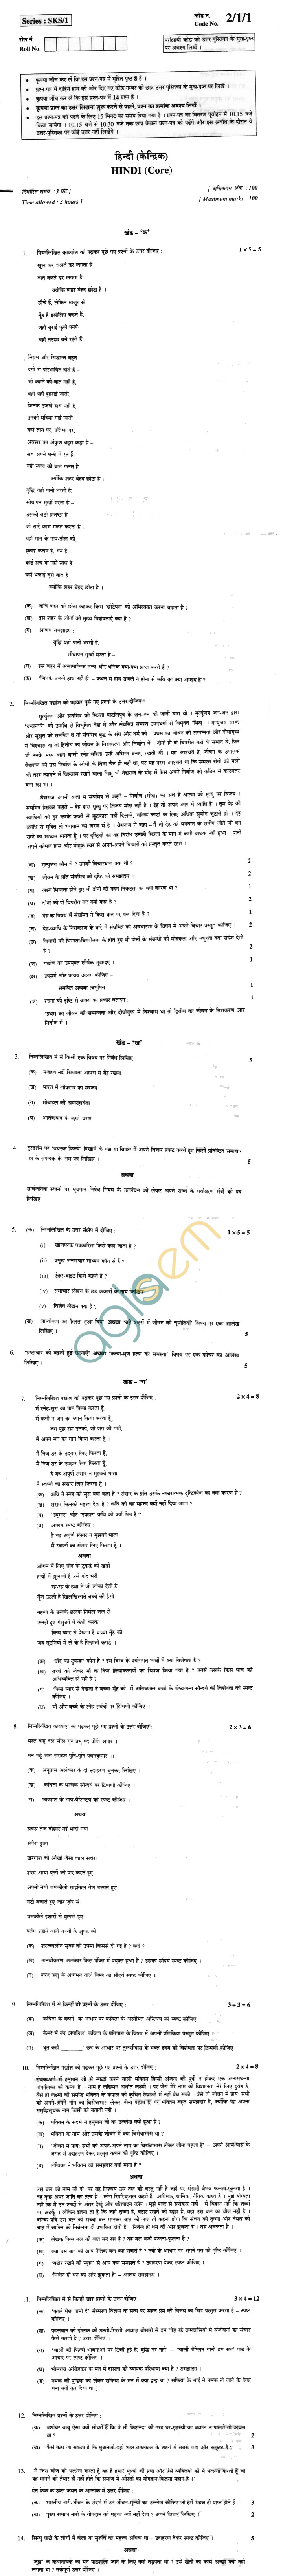 CBSE Board Exam 2013 Class XII Question Paper - Hindi (Core)